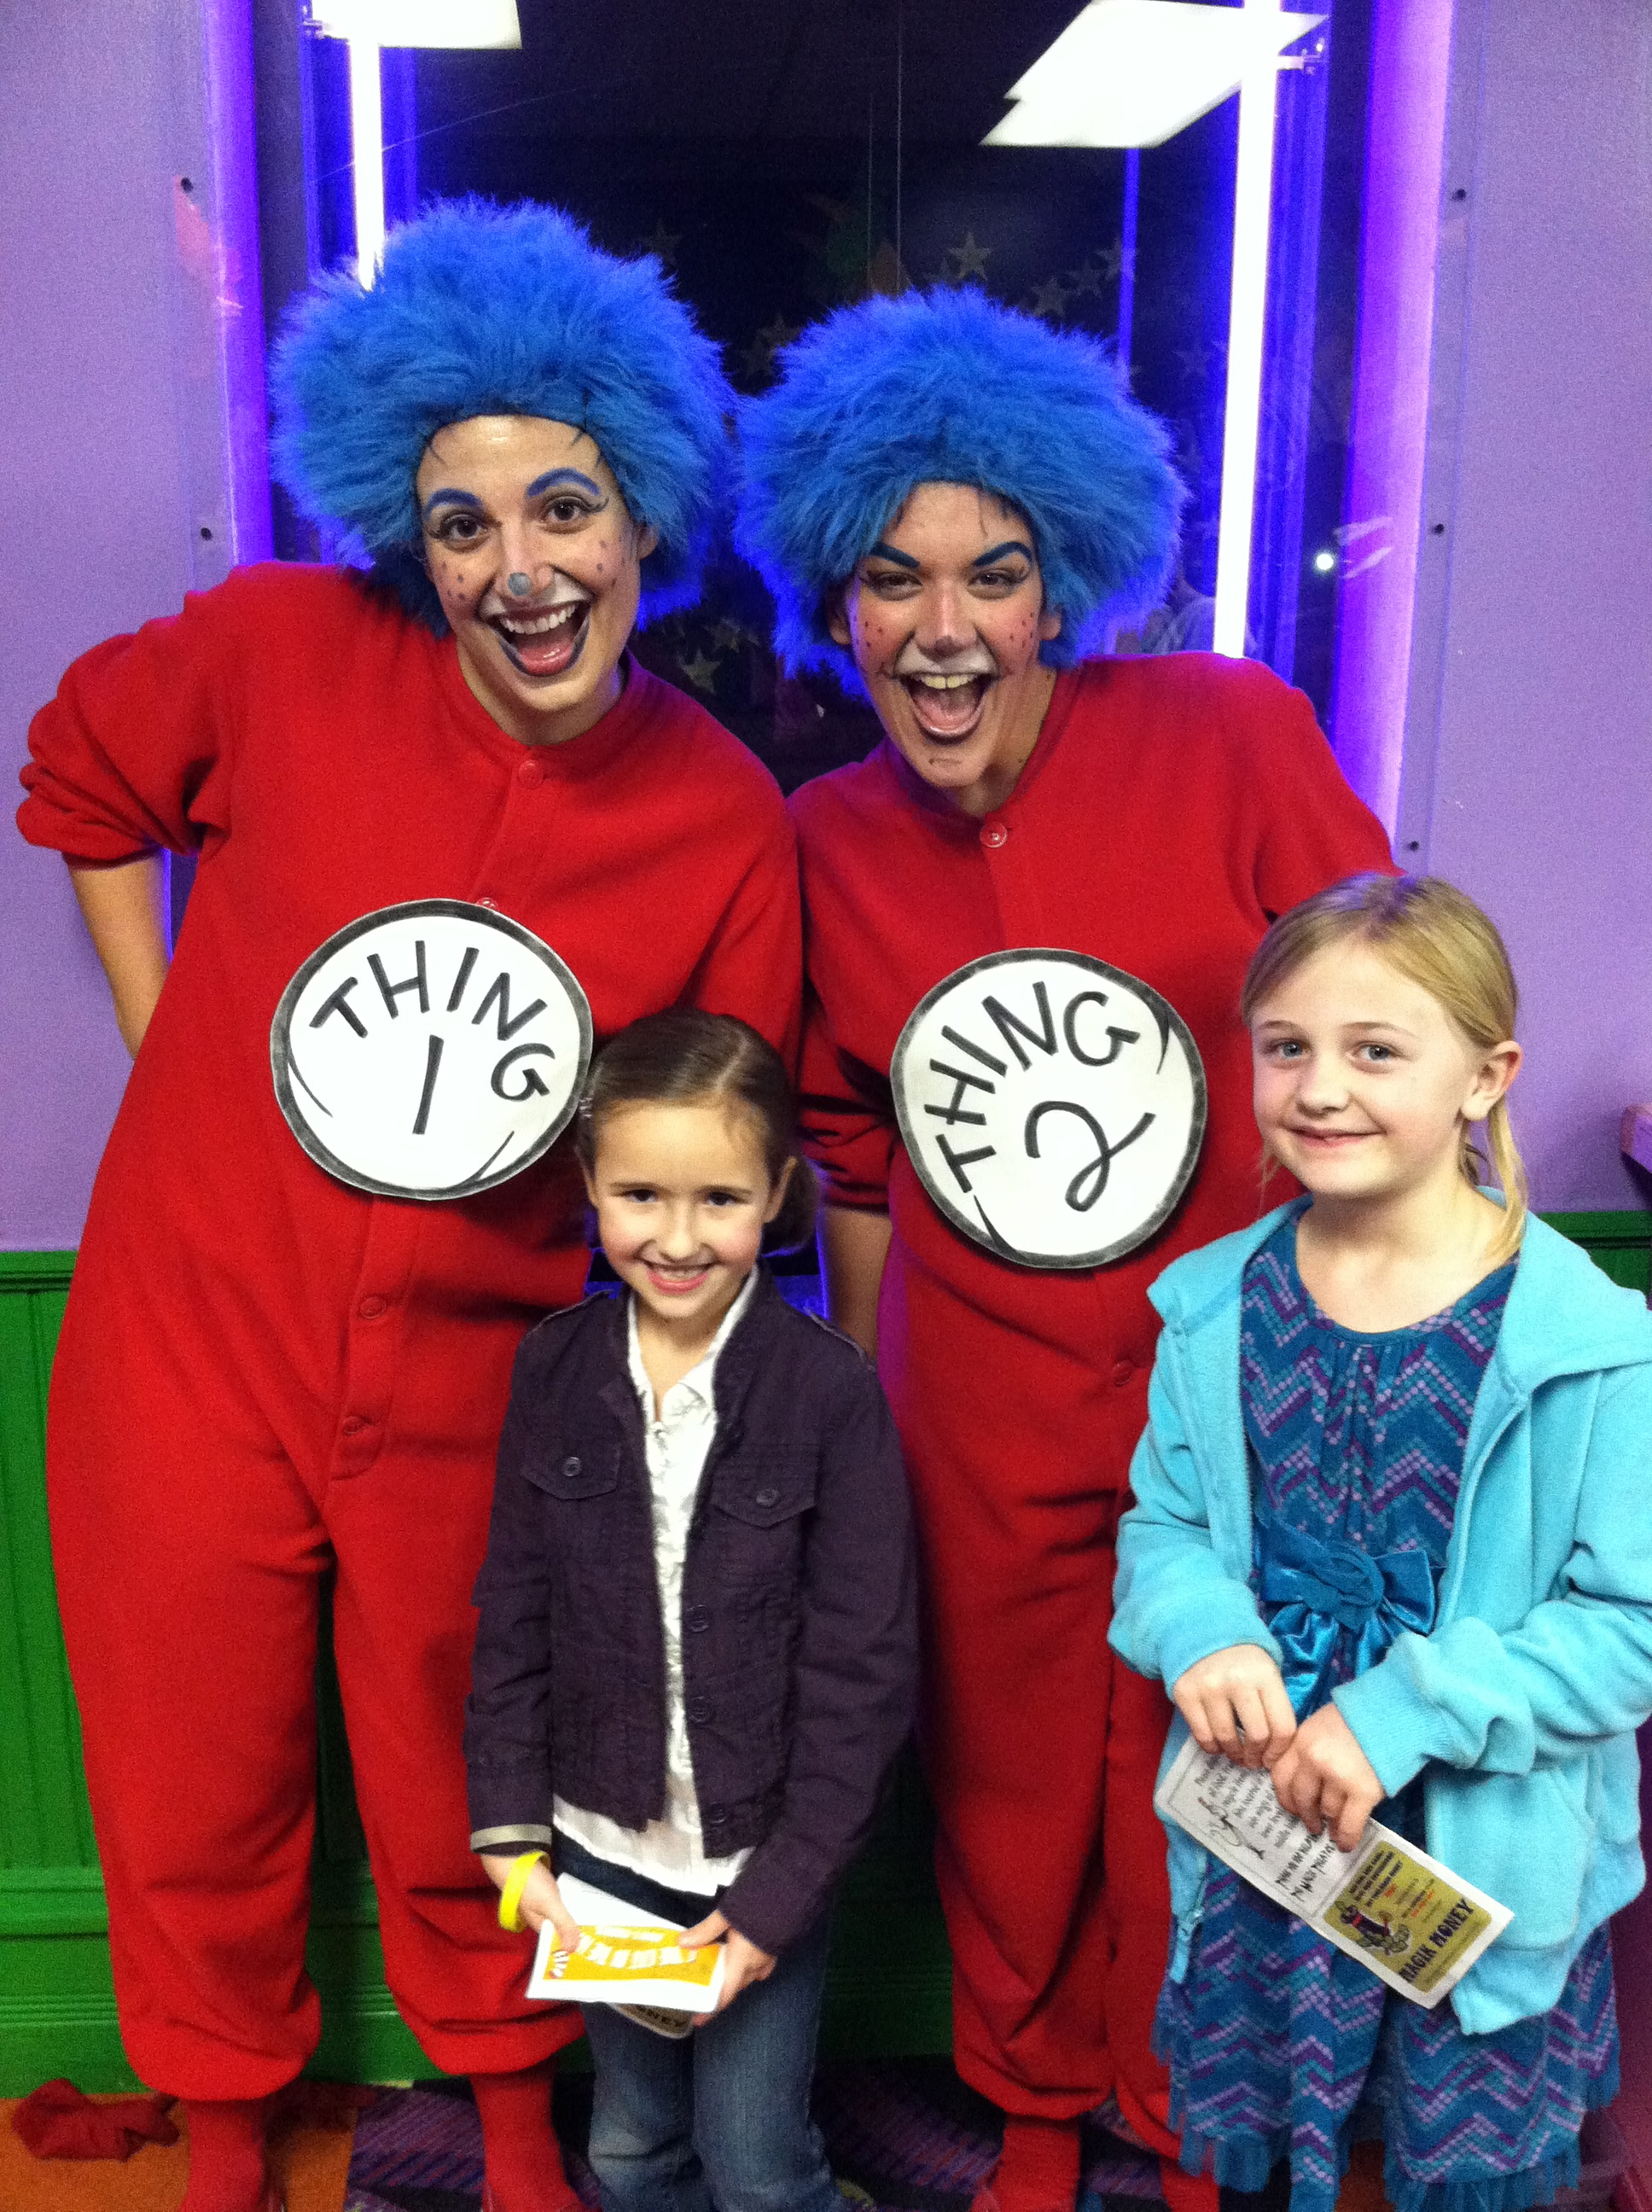 Gabi and Shelby at the Magik Theater hanging out with Thing 1 & Thing 2!